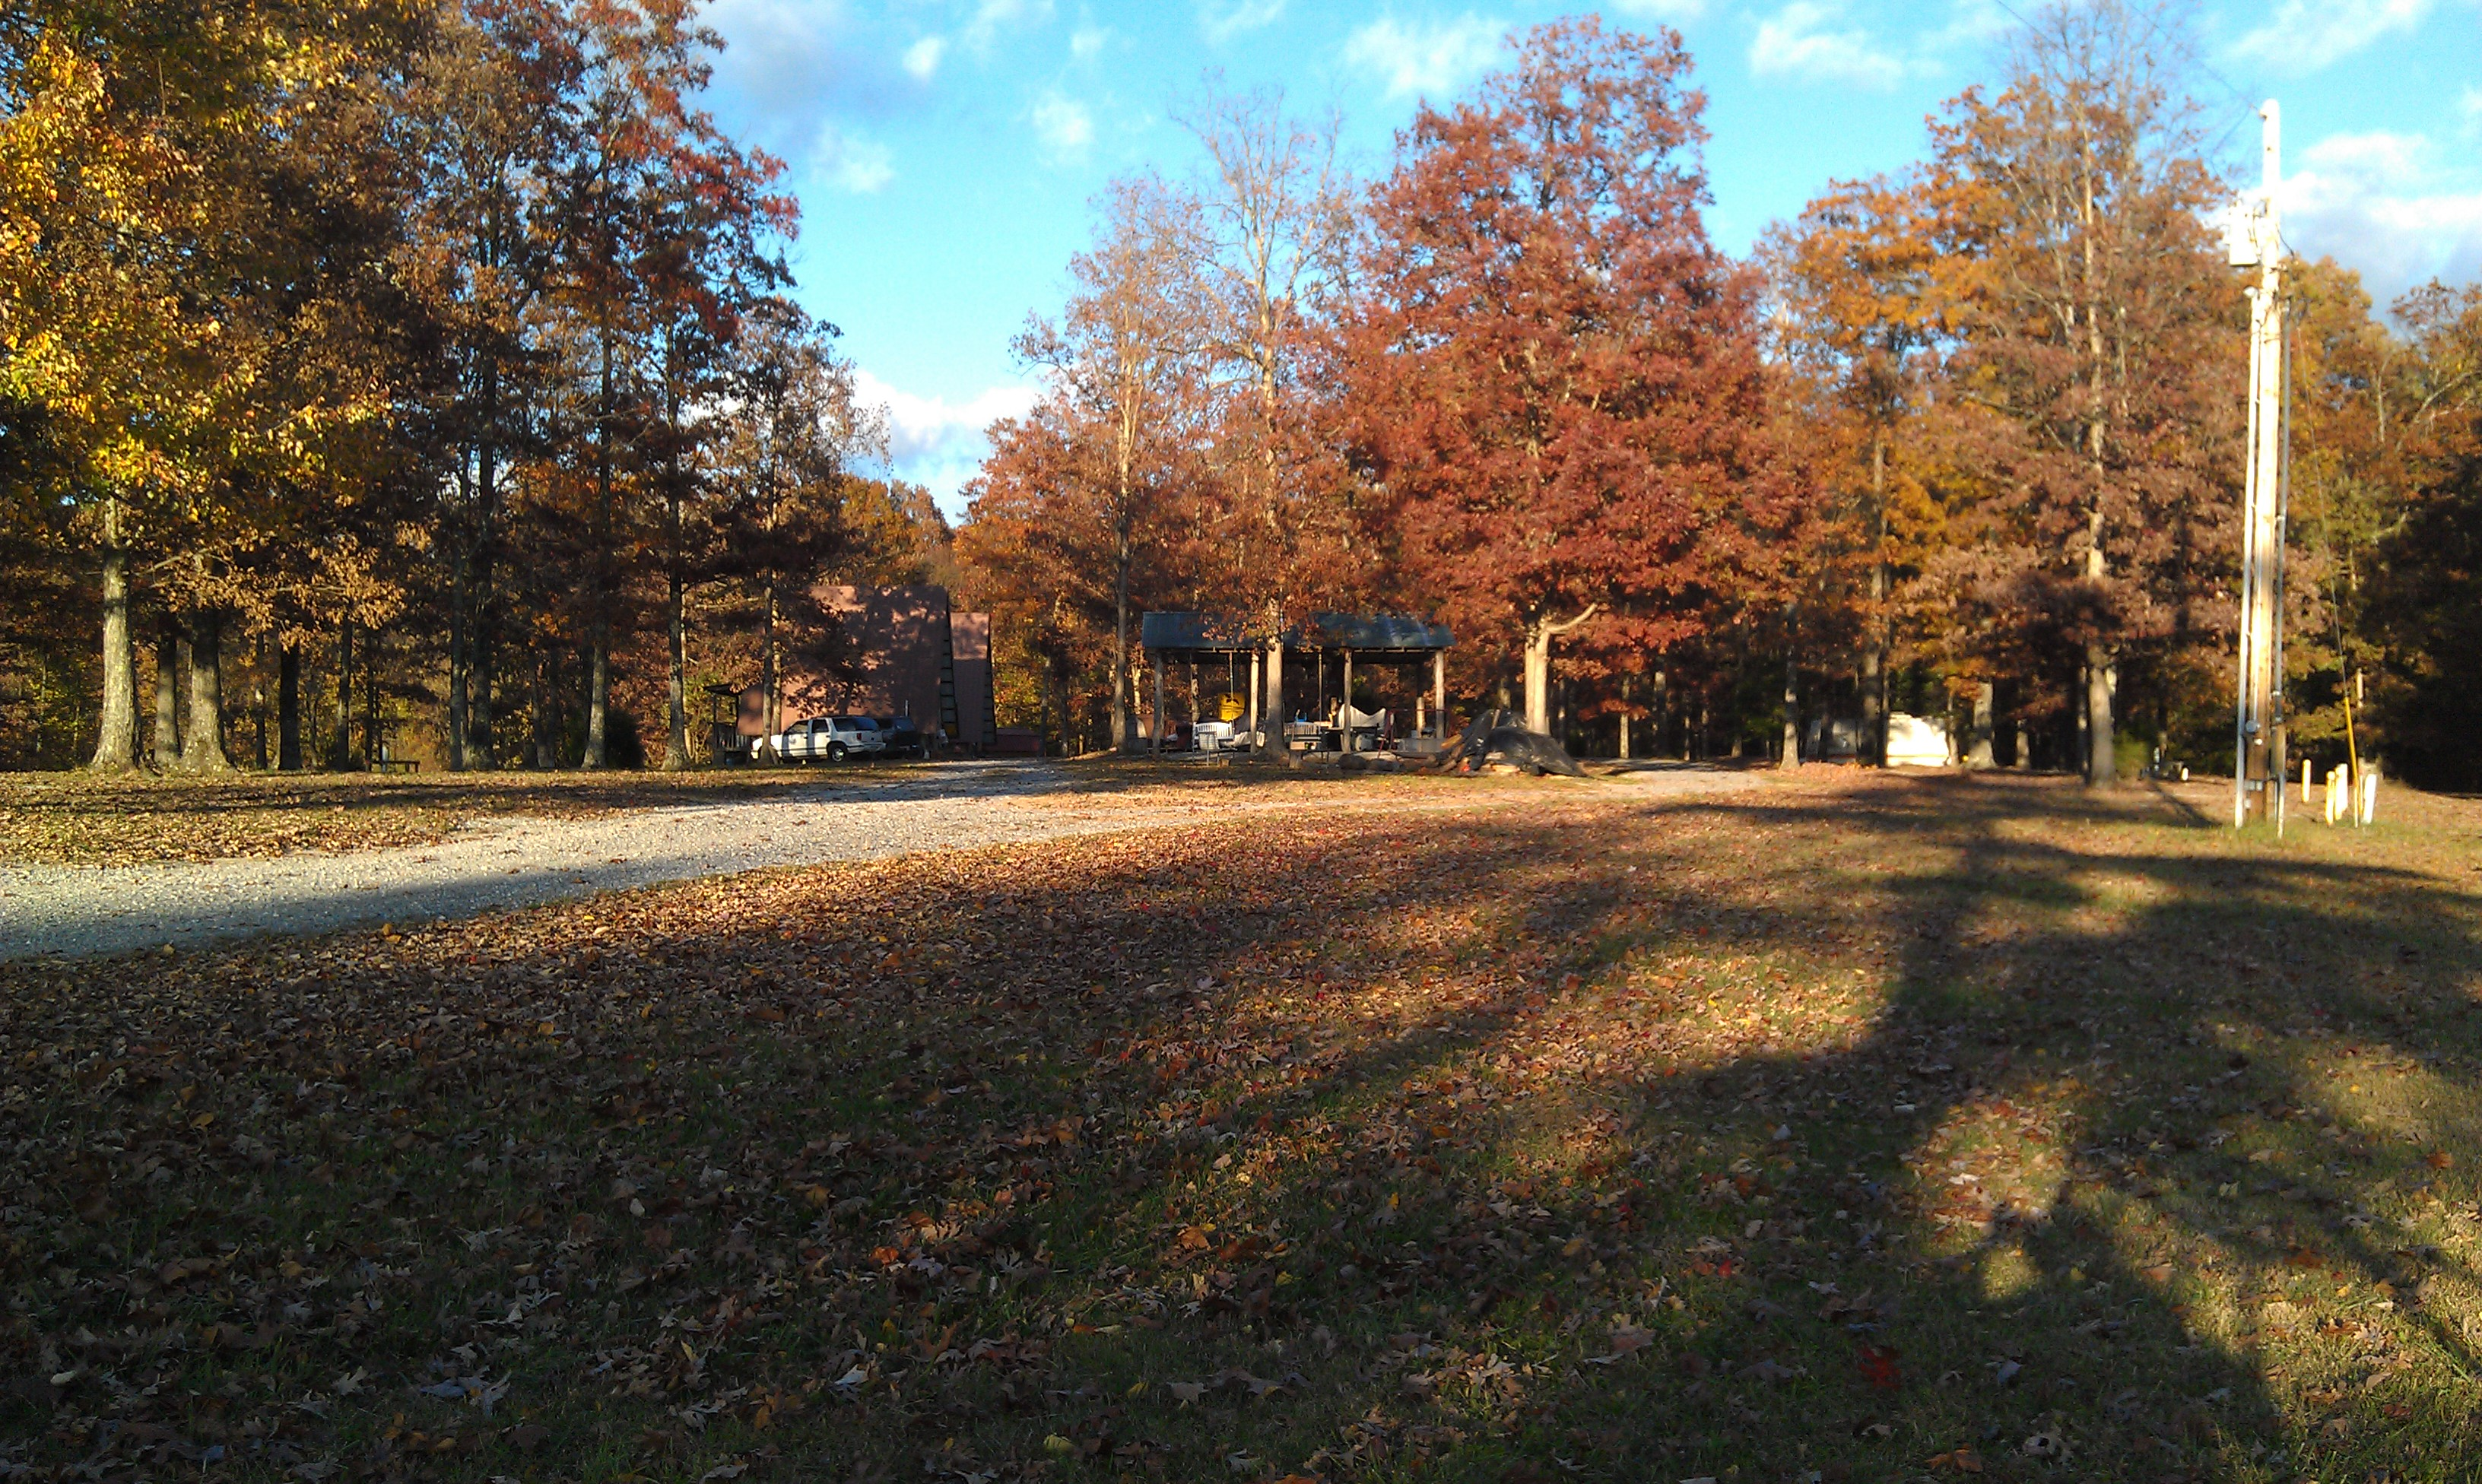 Campground in Autumn